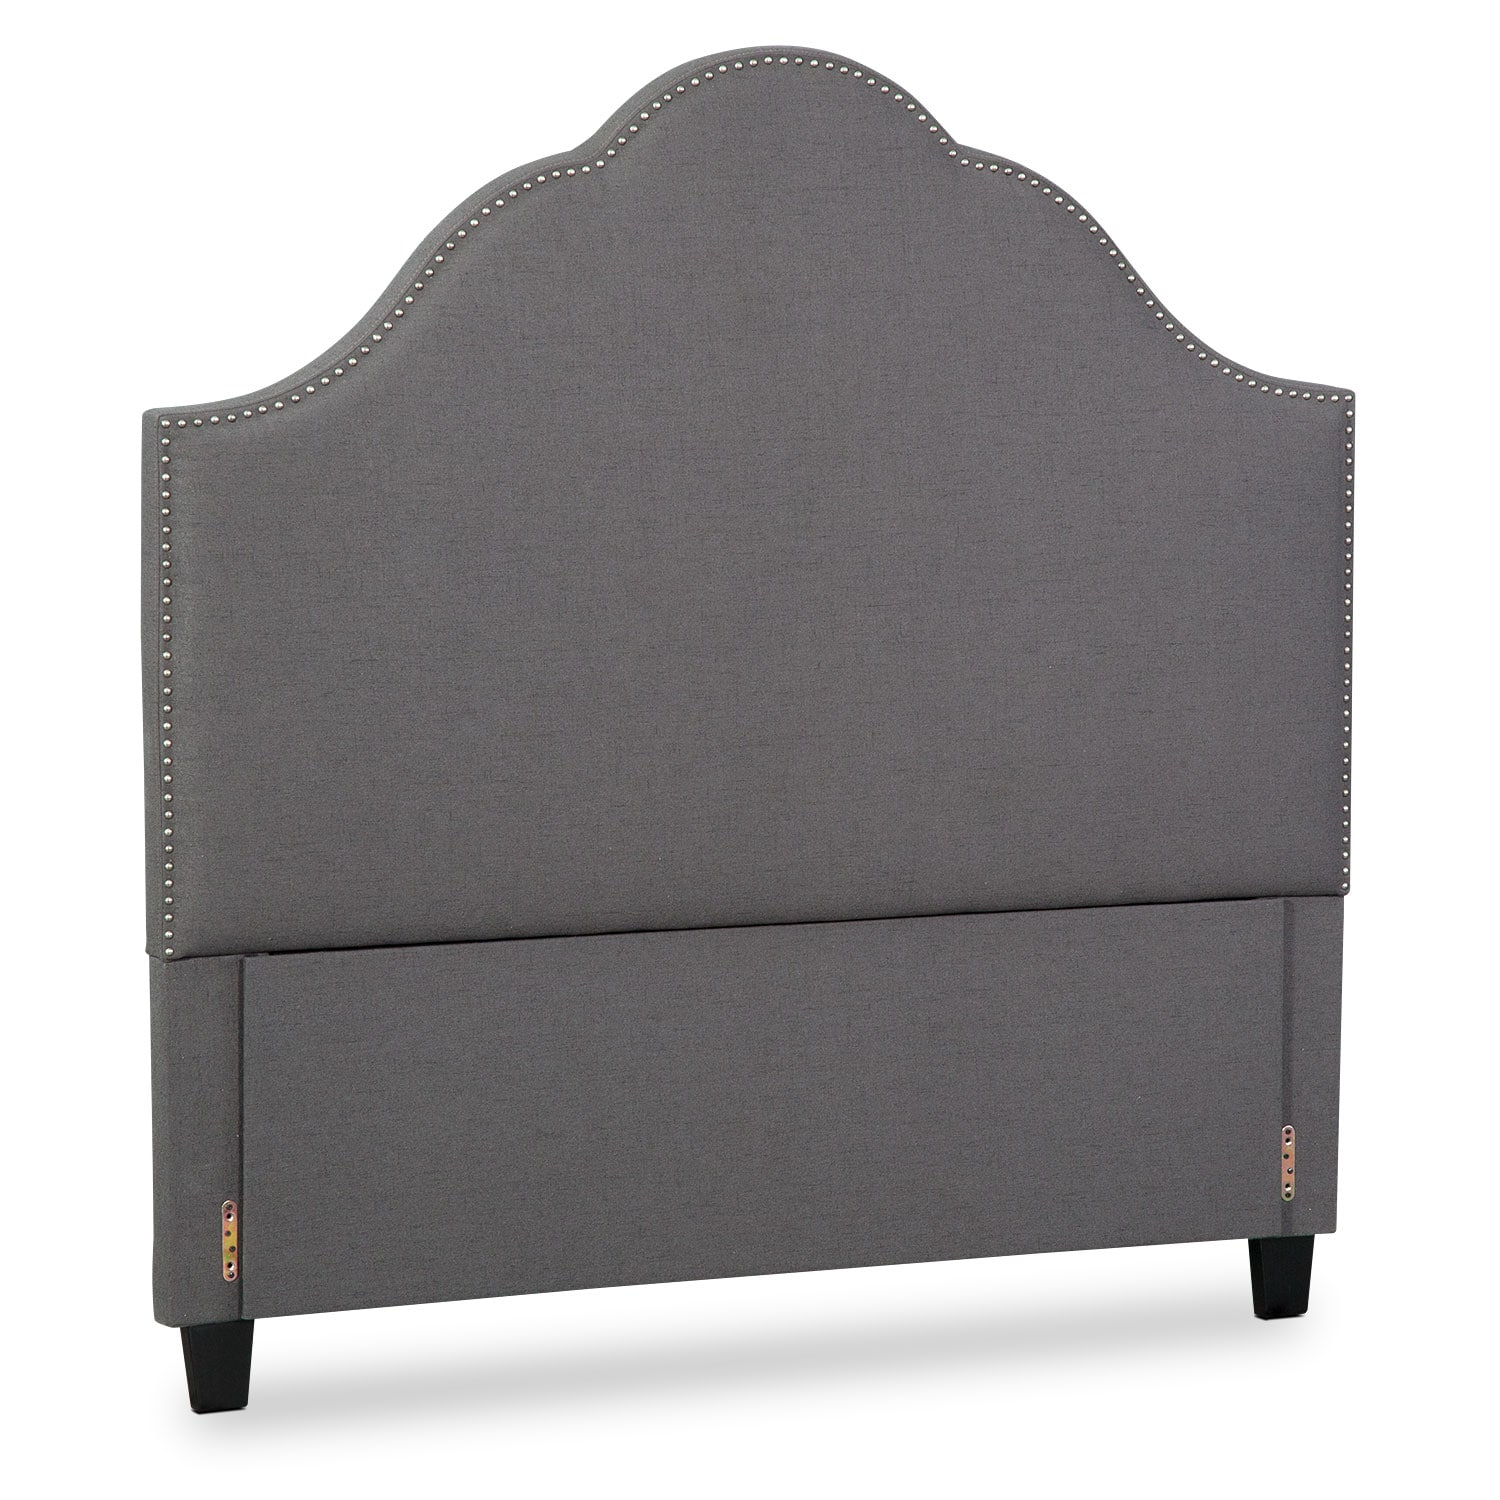 Maya King Upholstered Headboard - Gray